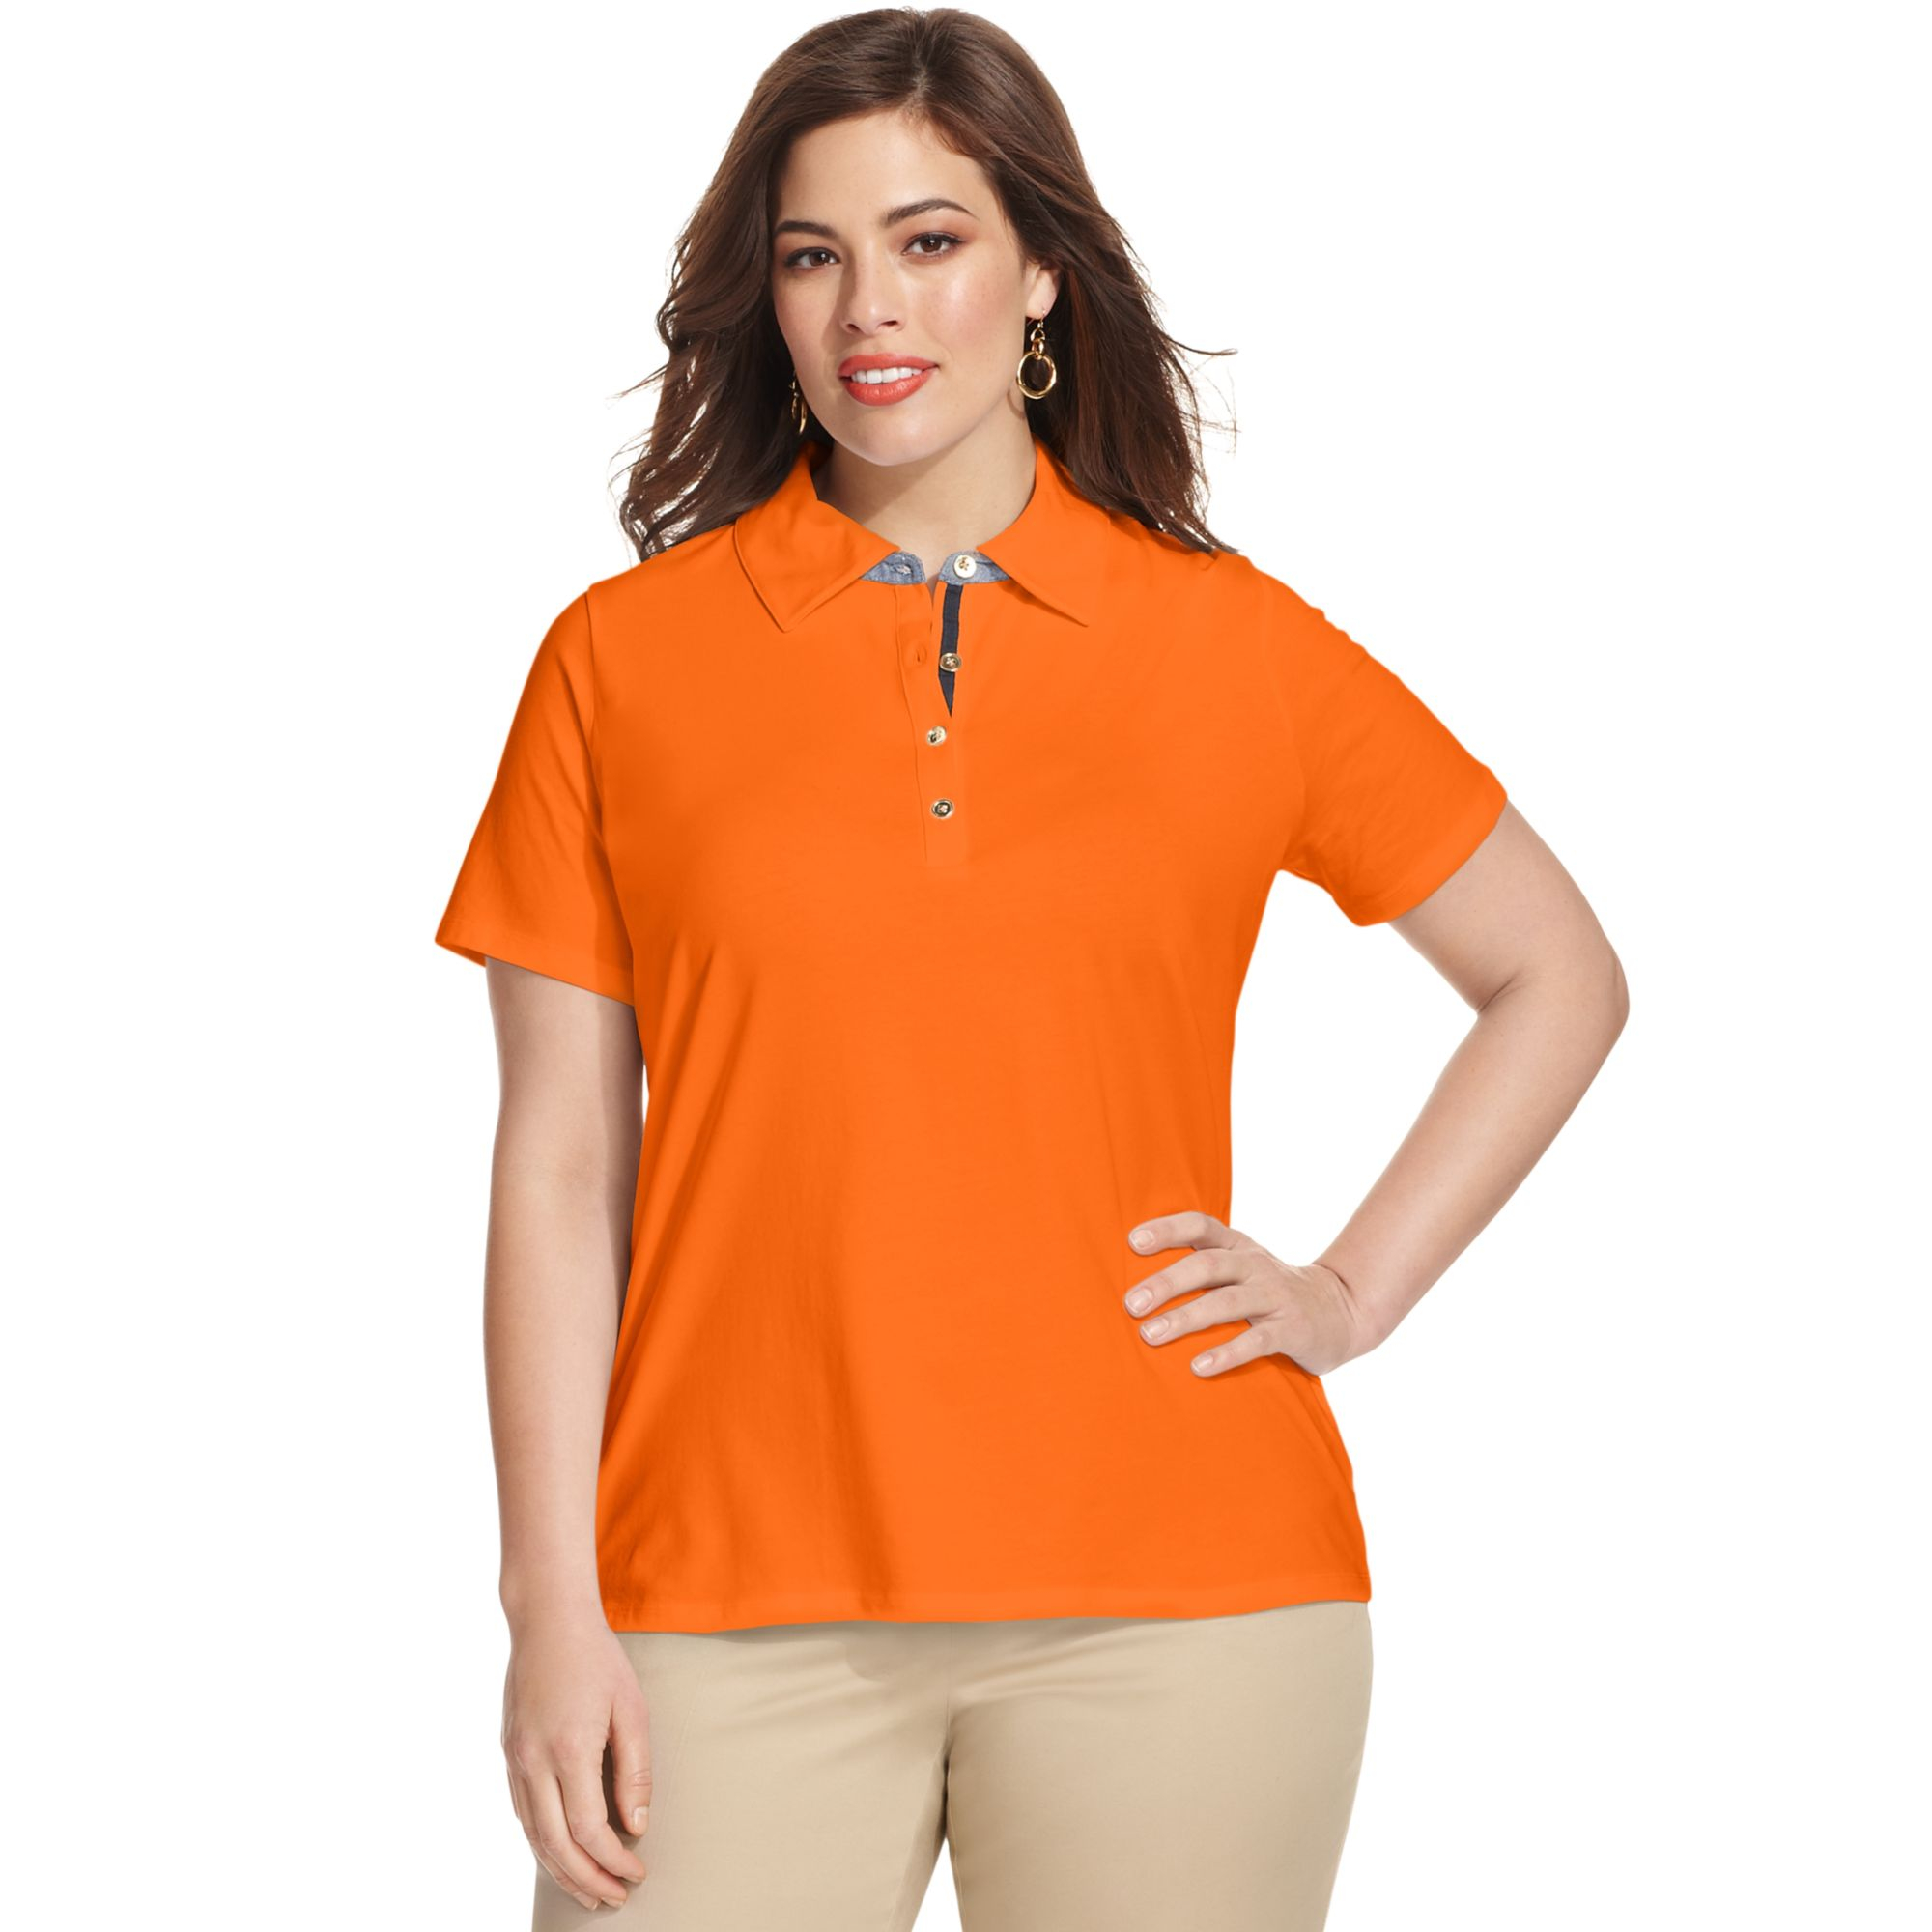 Jones New York Signature Plus Size Shortsleeve Polo Shirt